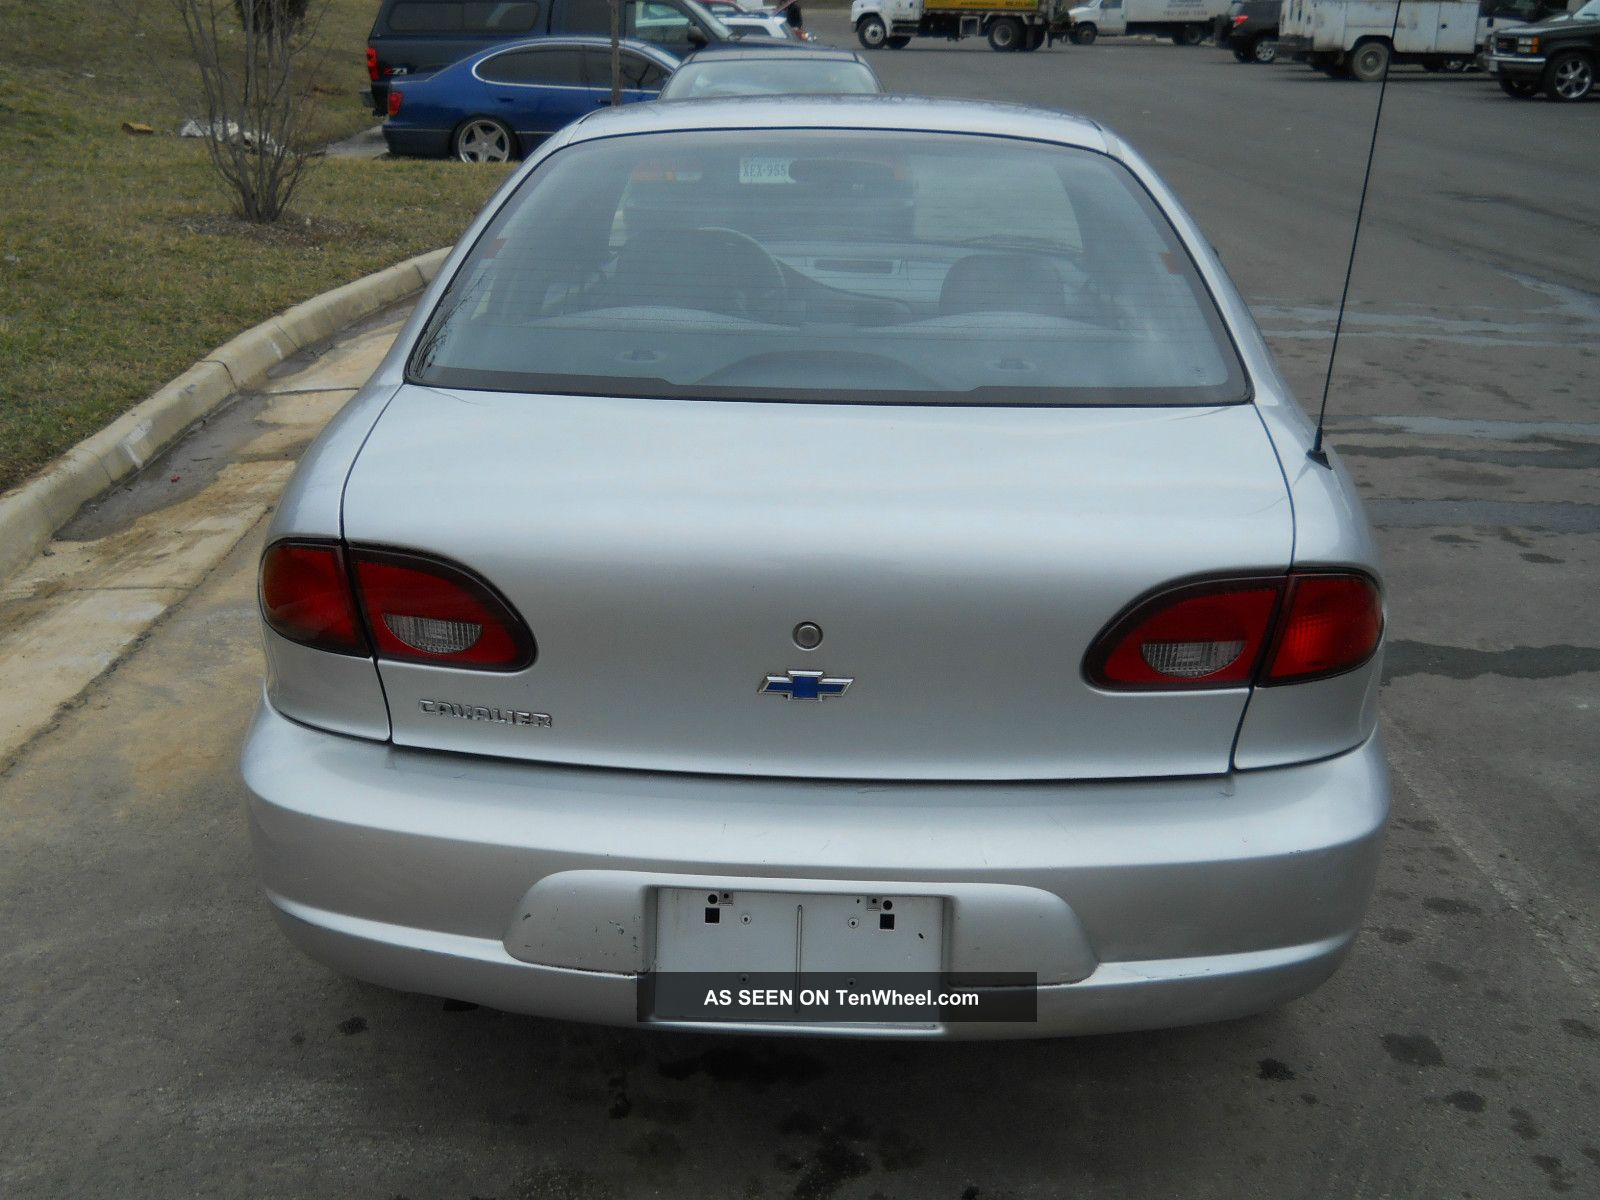 2000 chevrolet cavalier base sedan 4 door 2 2l for Door 2 door cars